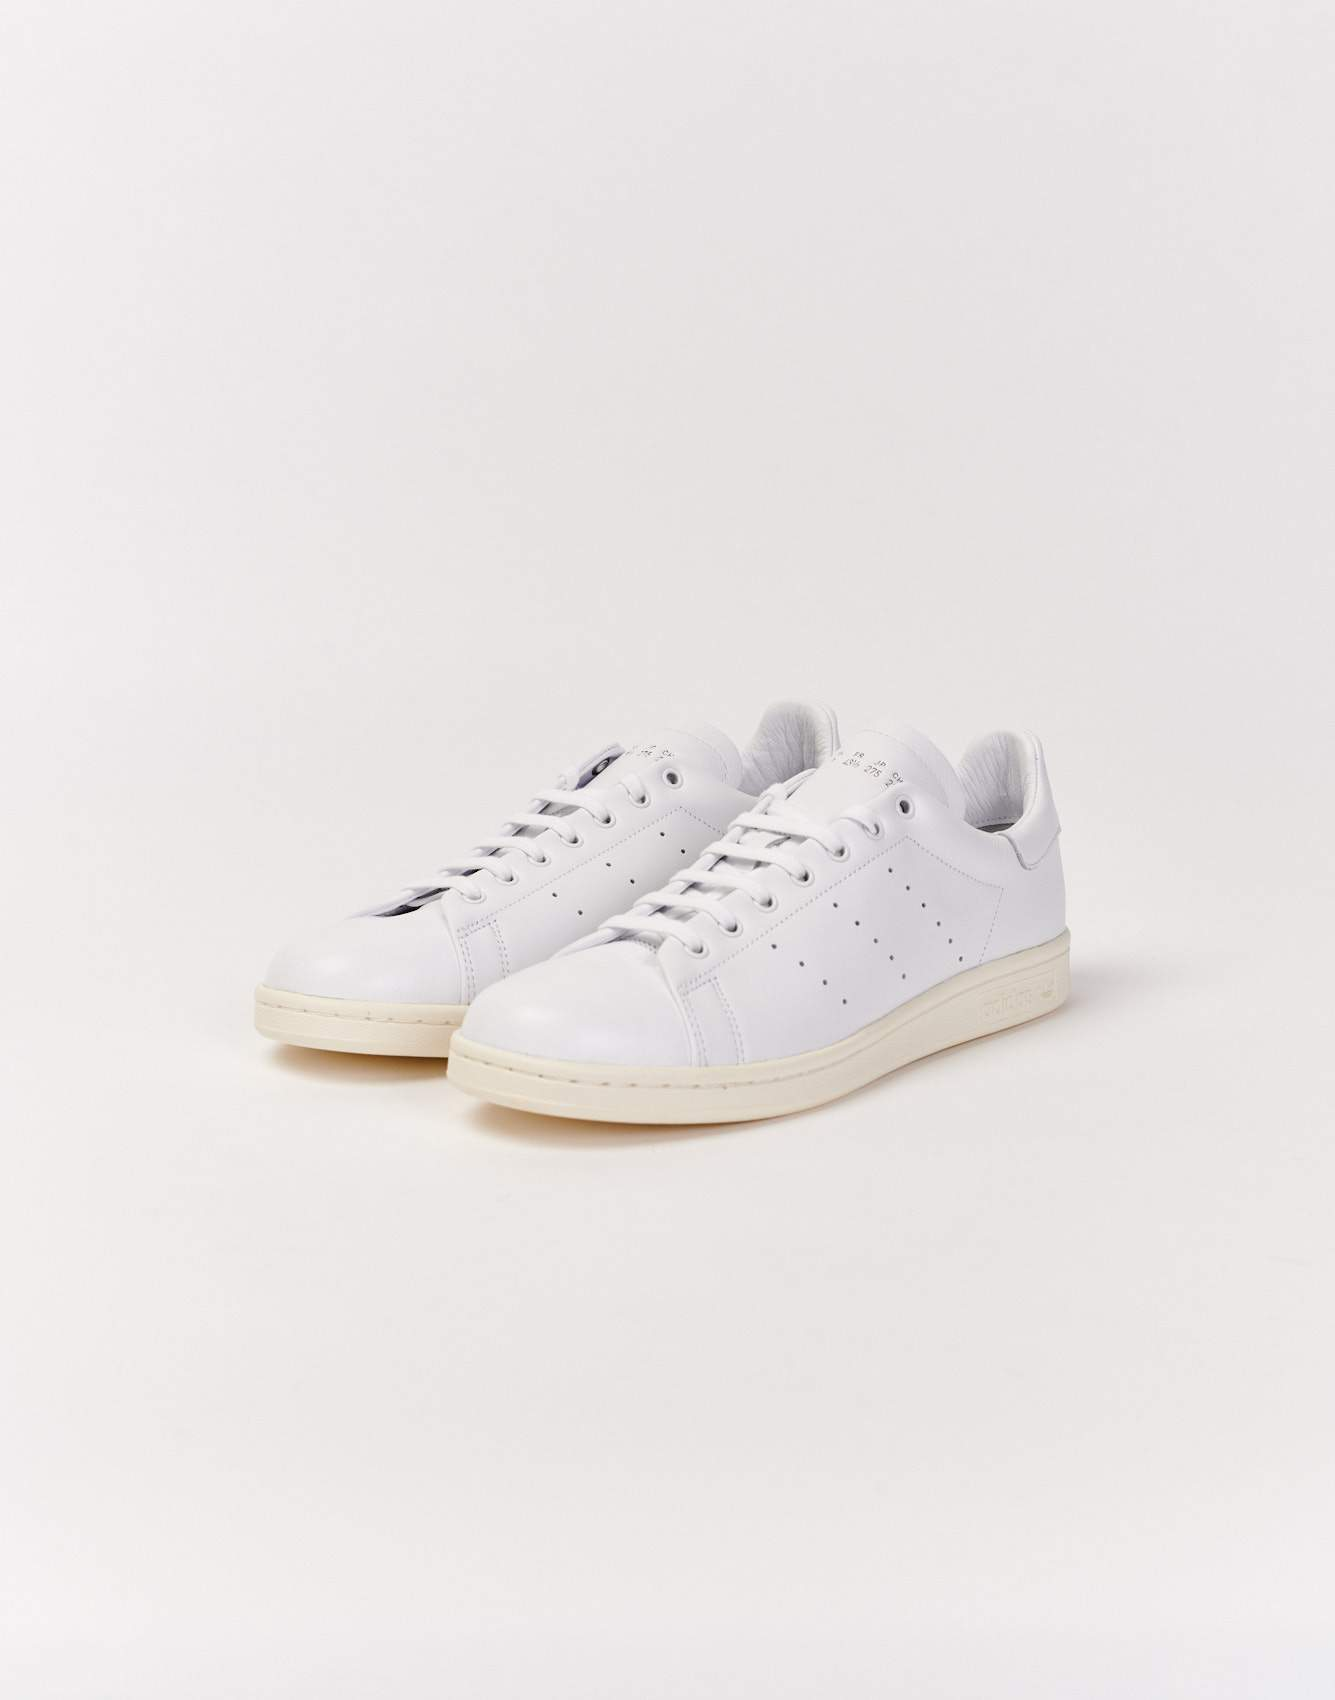 new concept 427a6 85a96 Adidas Stan Smith shoes   Fall-Winter '19 collection   Bellerose